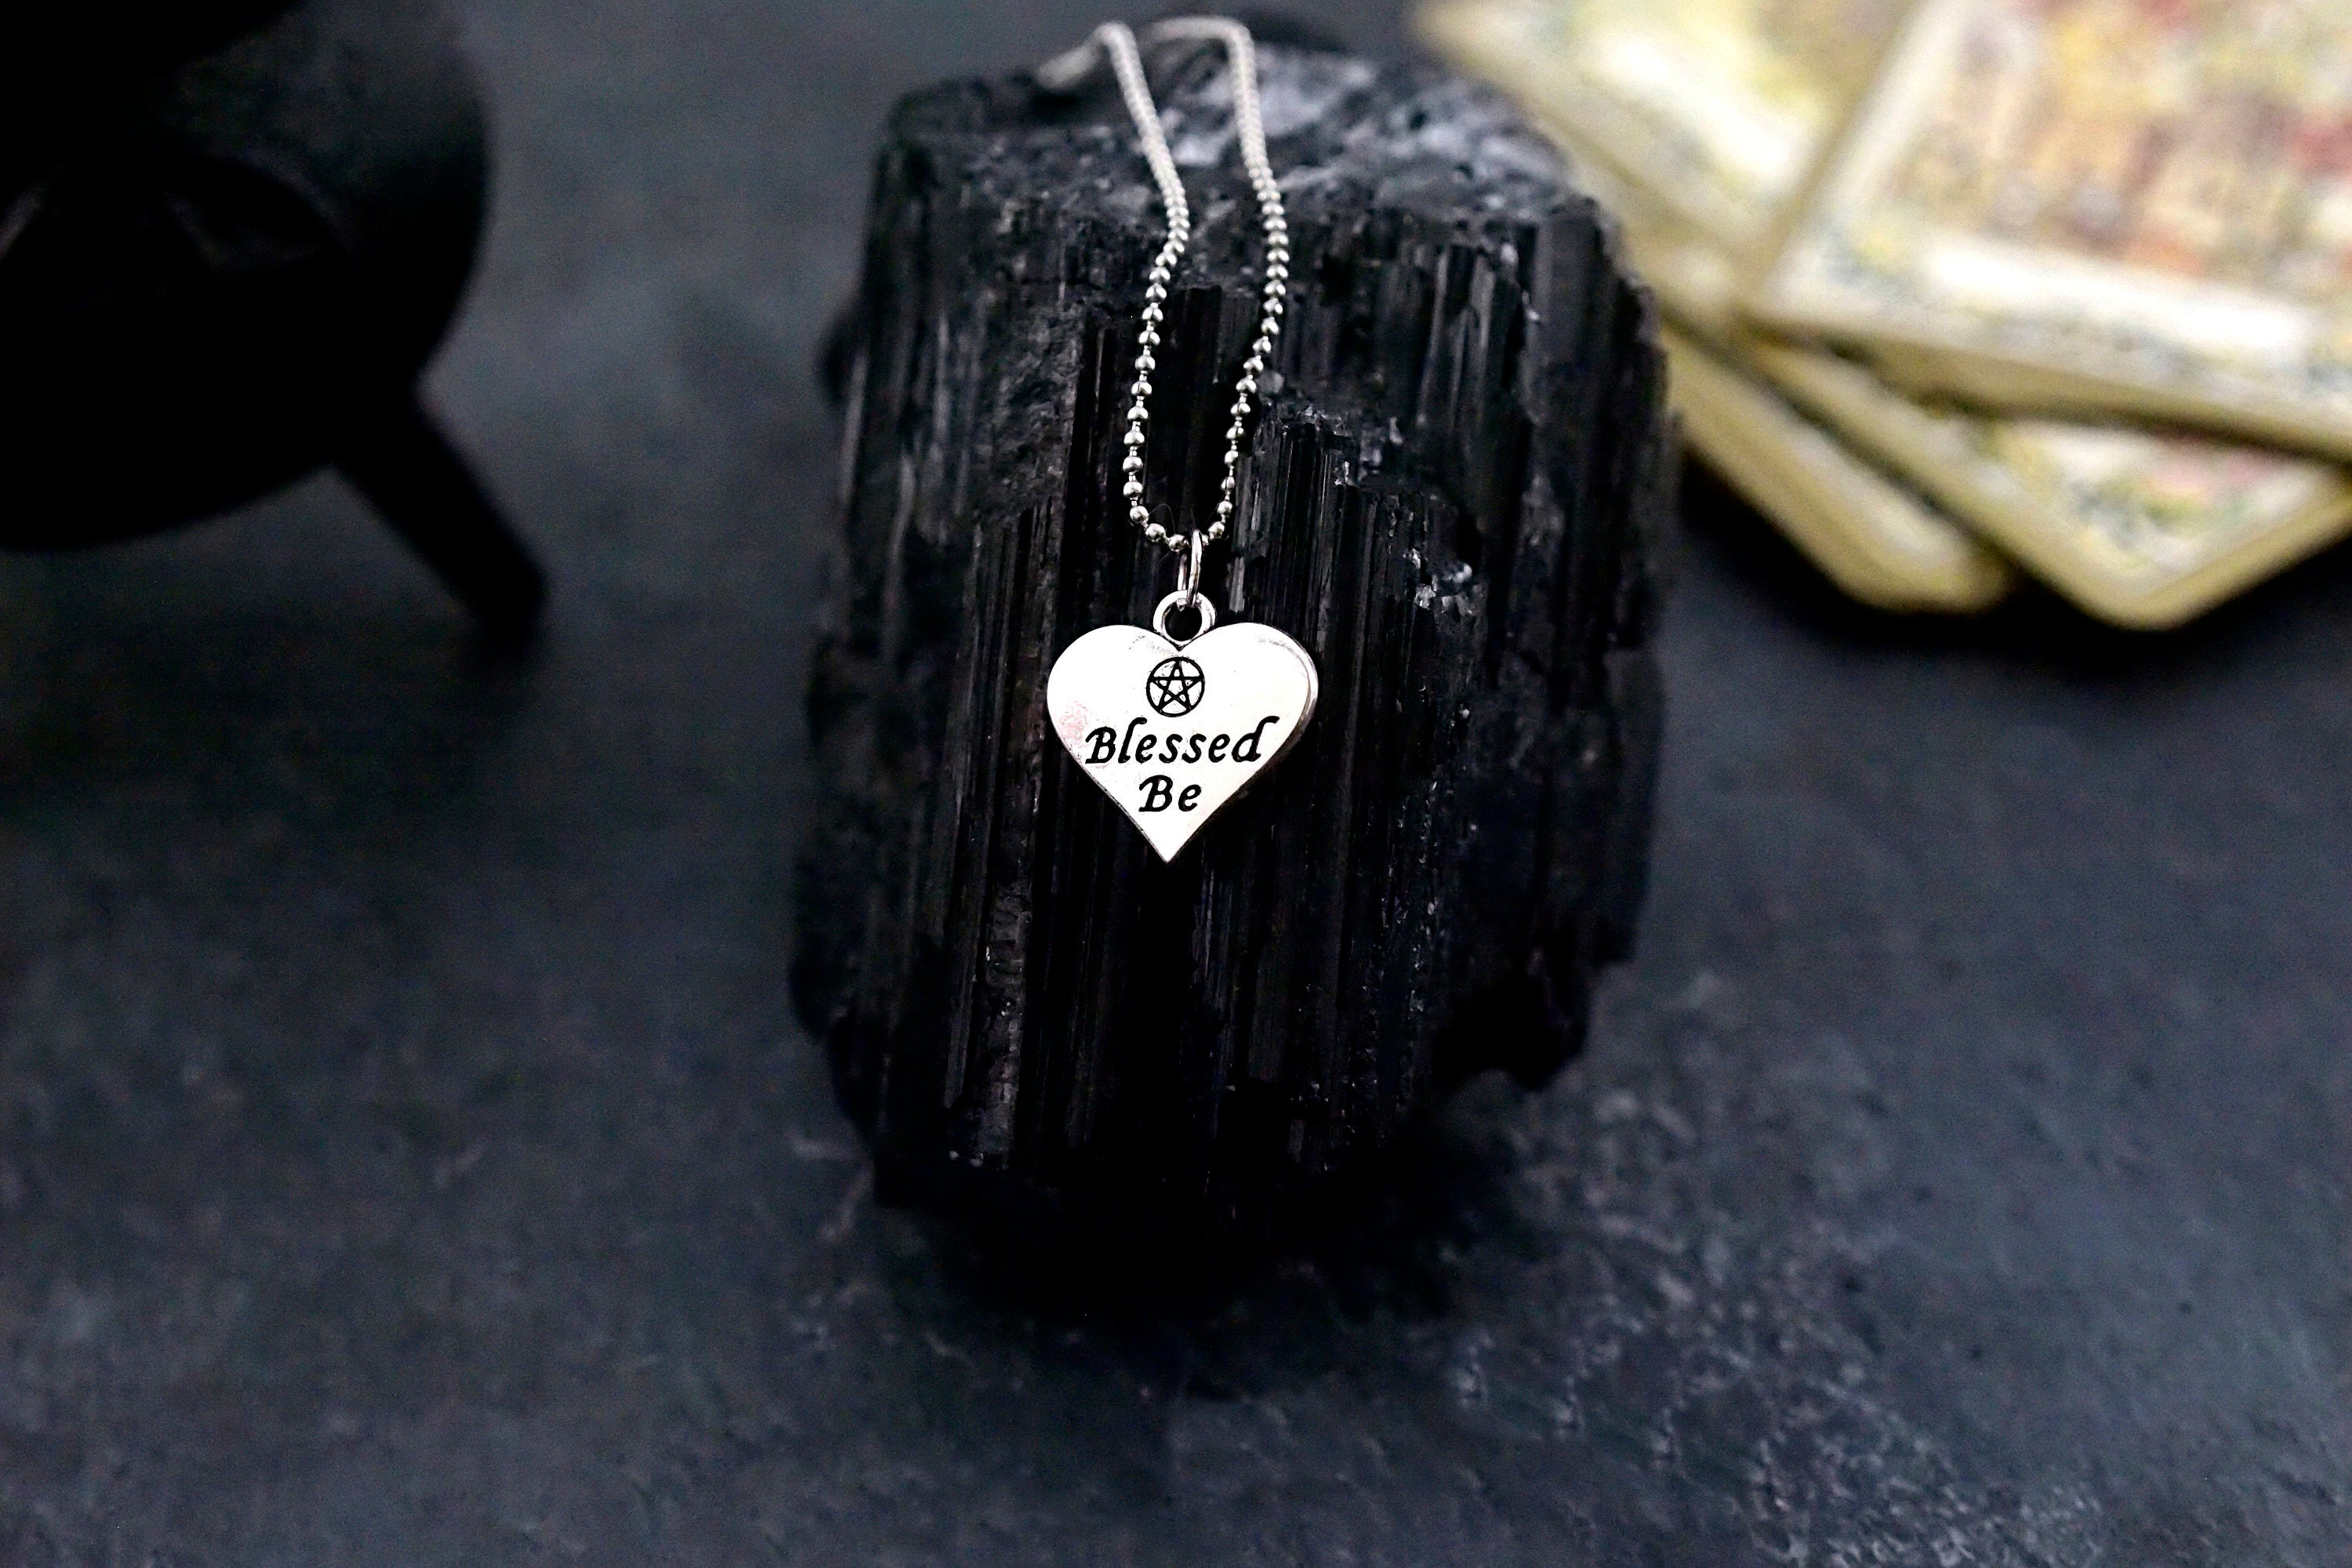 Blessed Be ~ Heart Shaped Pentacle Amulet